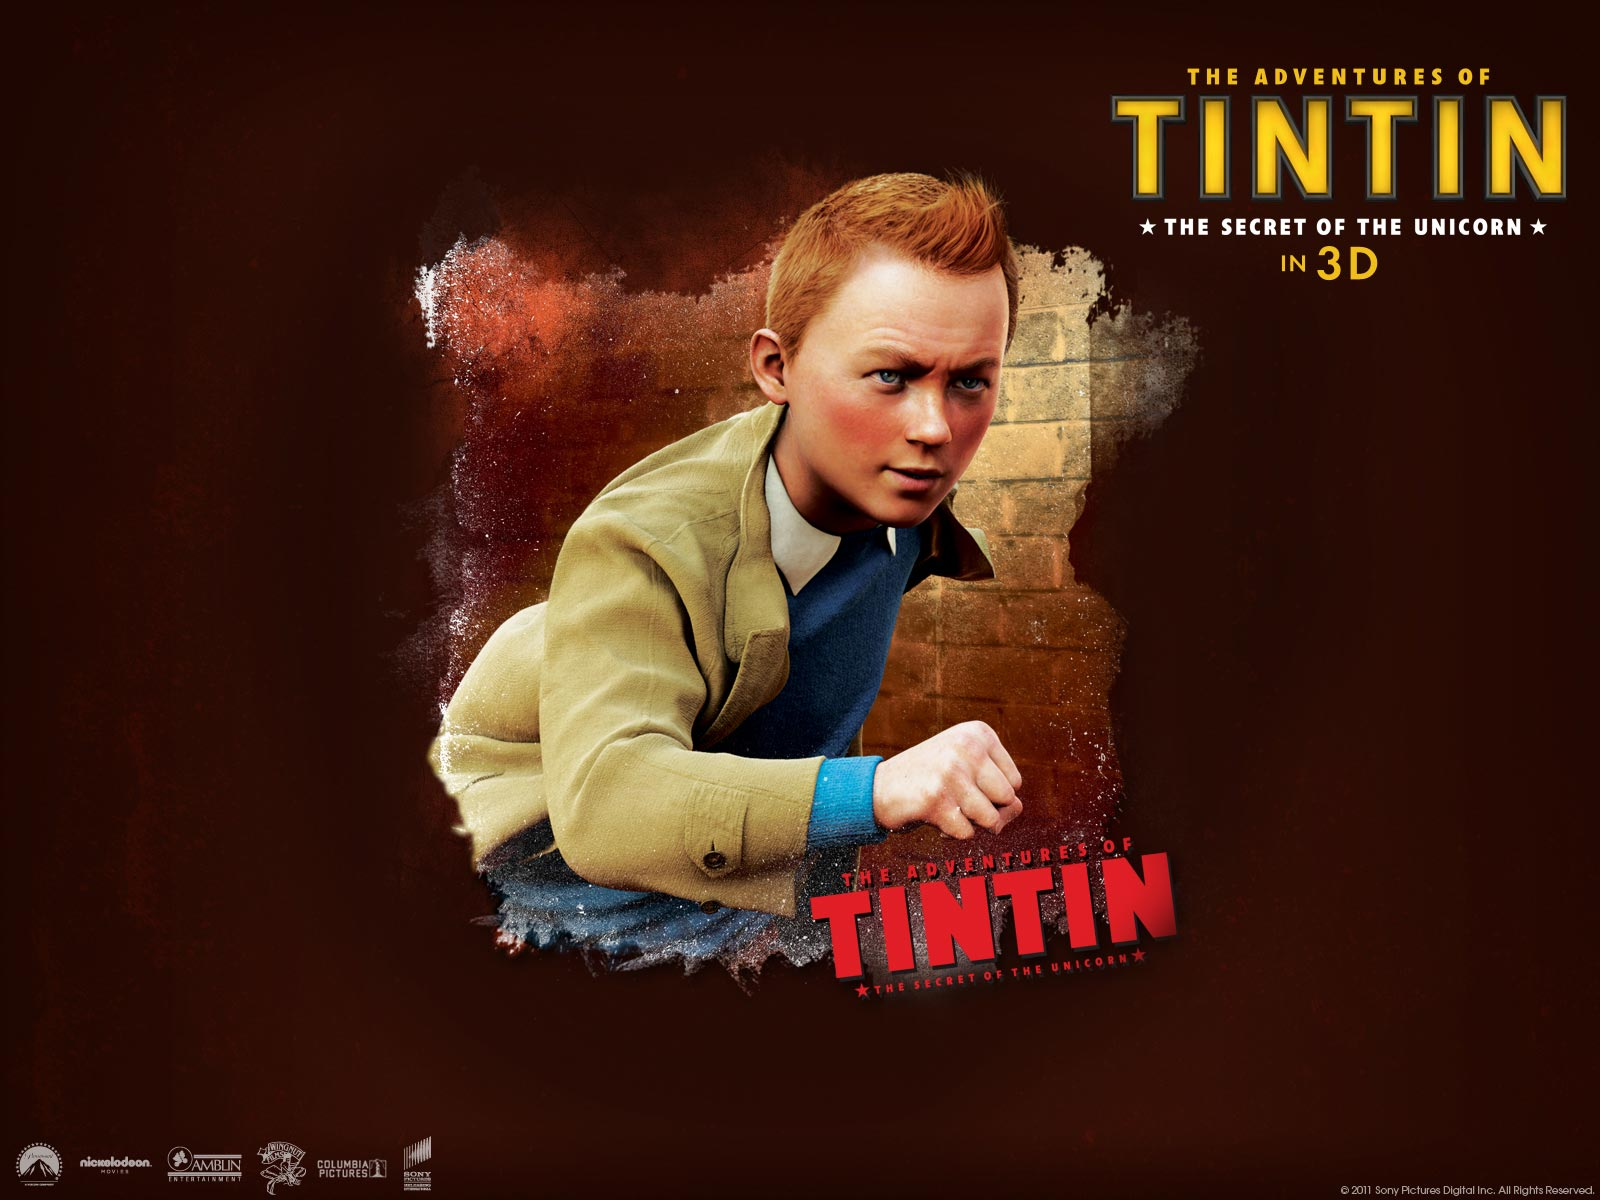 adventure of tintin To the untutored eye, tintin is little more than a cub reporter with curiously   they might even go to see the adventures of tintin at the theatre.